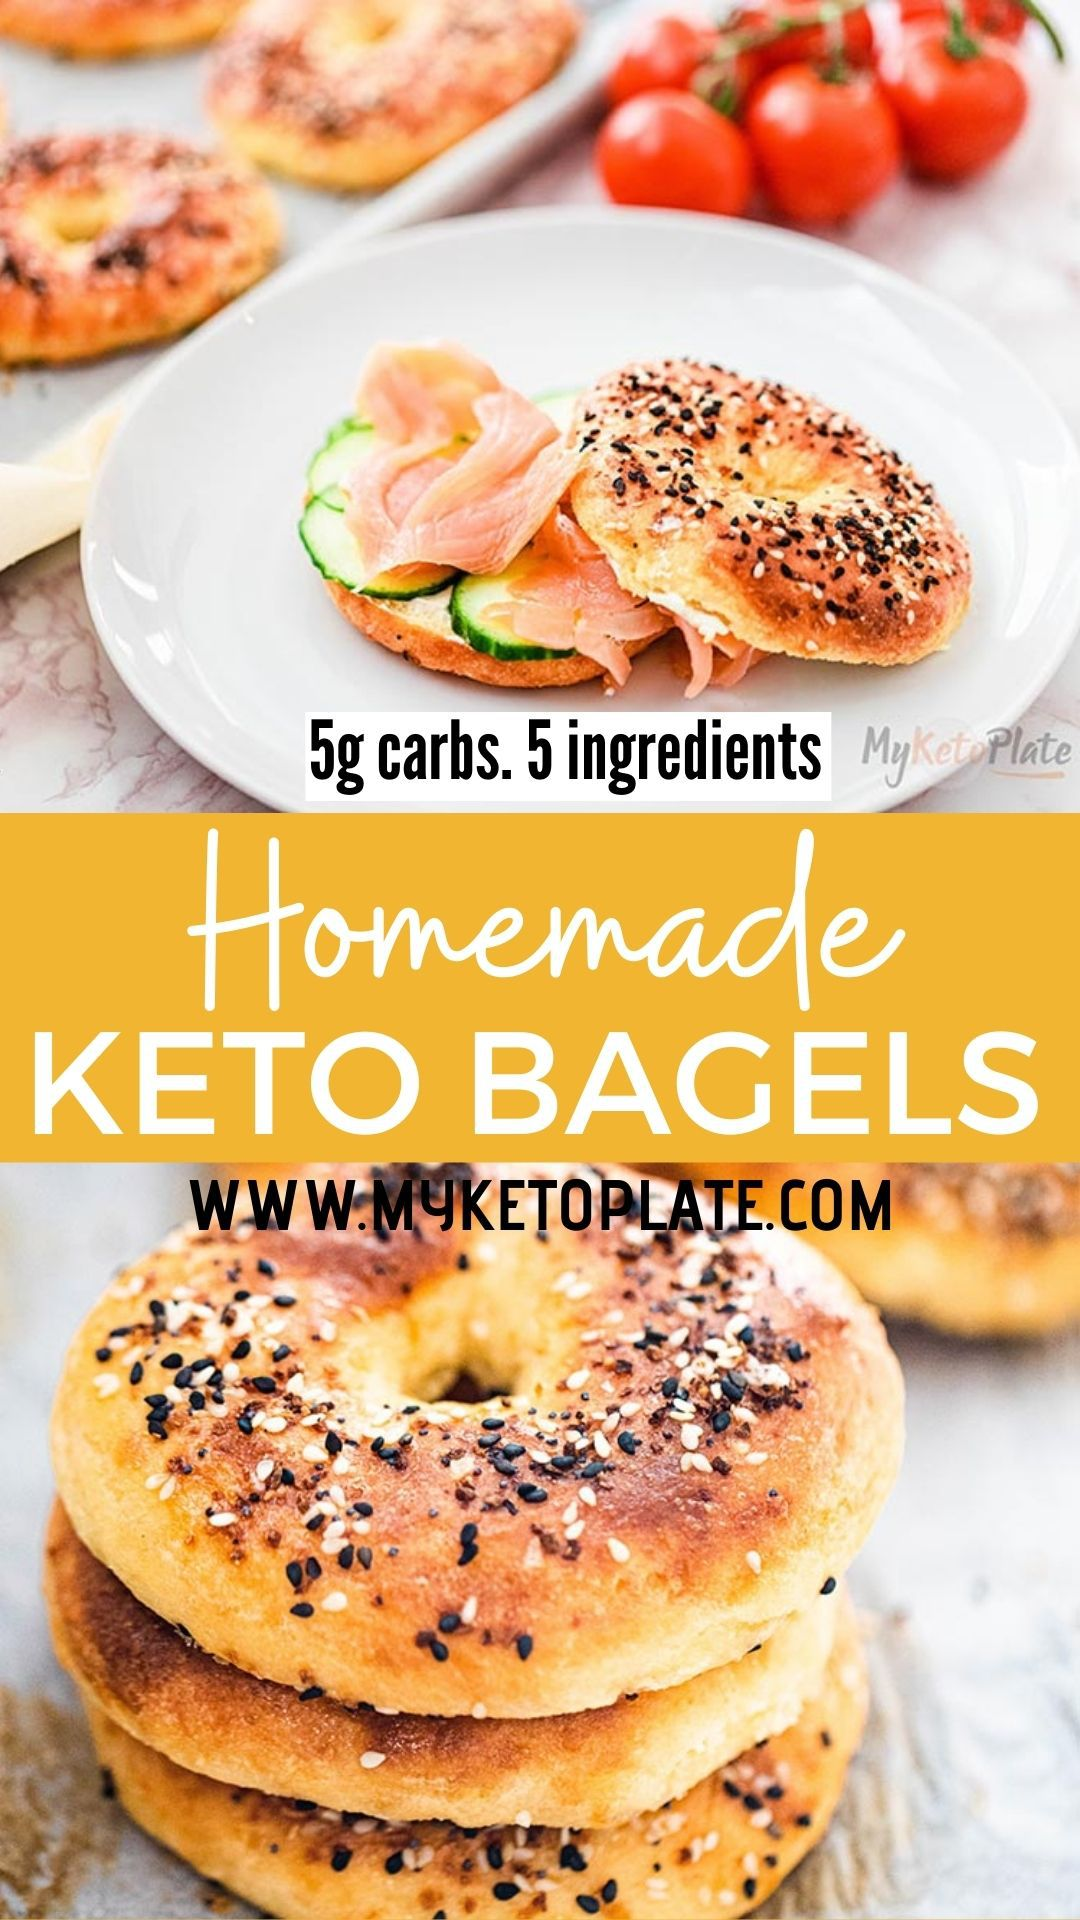 Easy Everything Keto Bagels - Low Carb Fathead Bagels